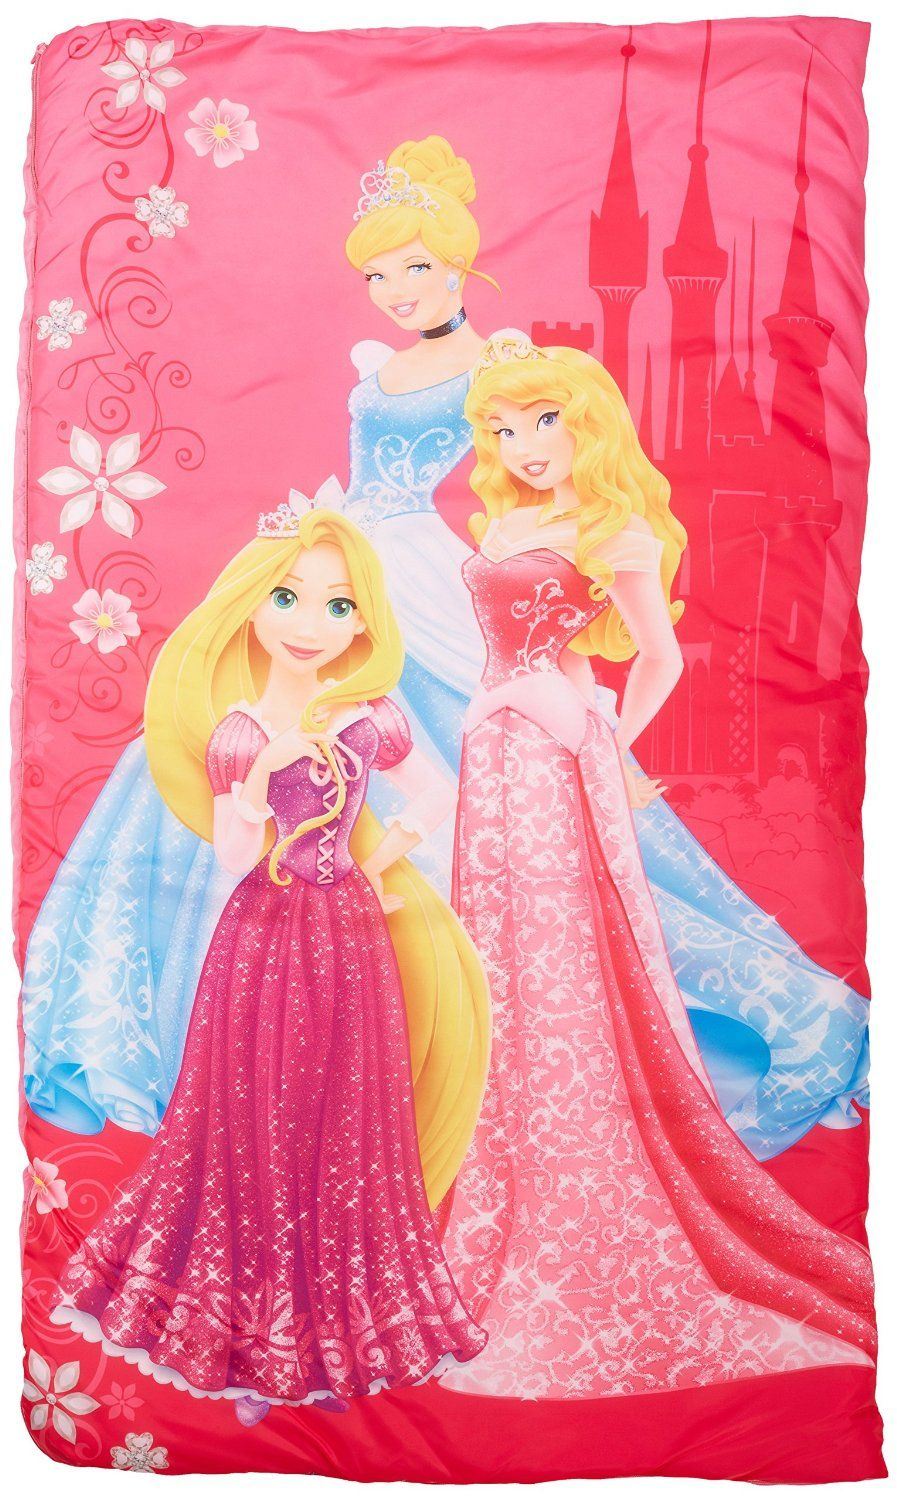 dbe8c6d9a16 Disney Princess Tiara and Jewels 30  x 54  Slumber-Bag with Bonus Carrying  Bag   Awesome product. Click the item shown here   Camping sleeping bags